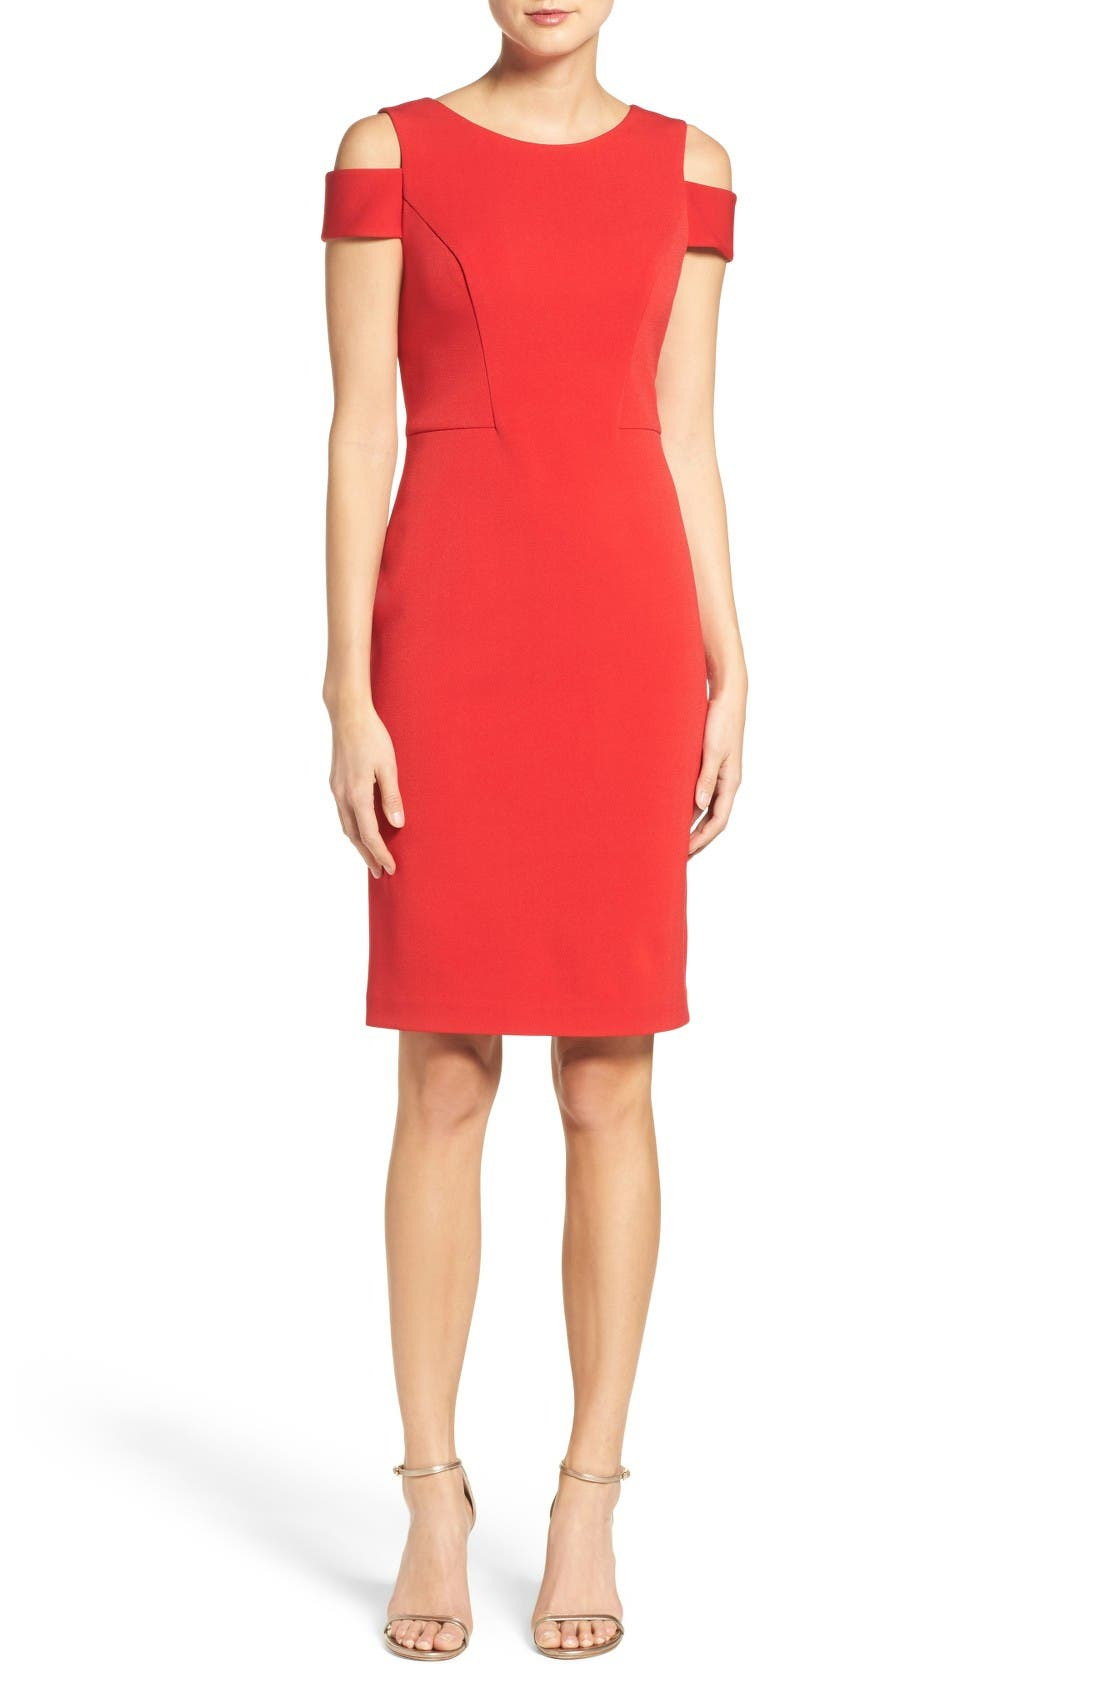 Alternate Image 1 Selected - Vince Camuto Cold Shoulder Crepe Sheath Dress